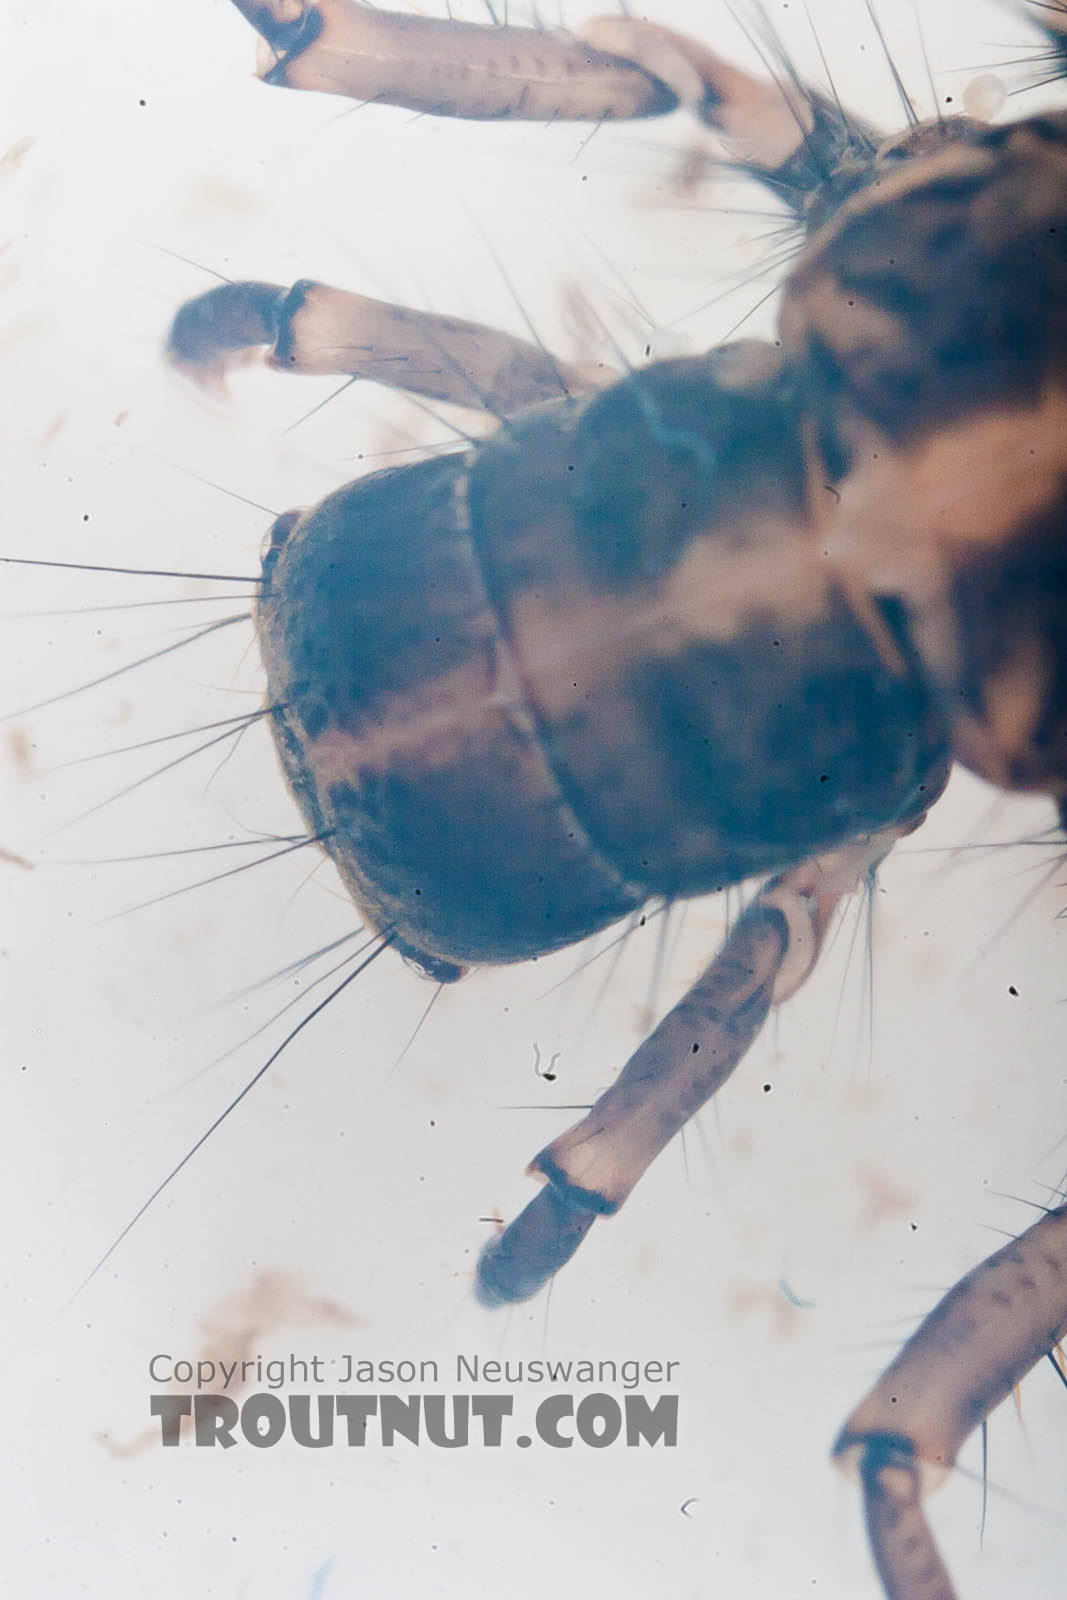 Onocosmoecus (Great Late-Summer Sedges) Caddisfly Larva from the Chena River in Alaska